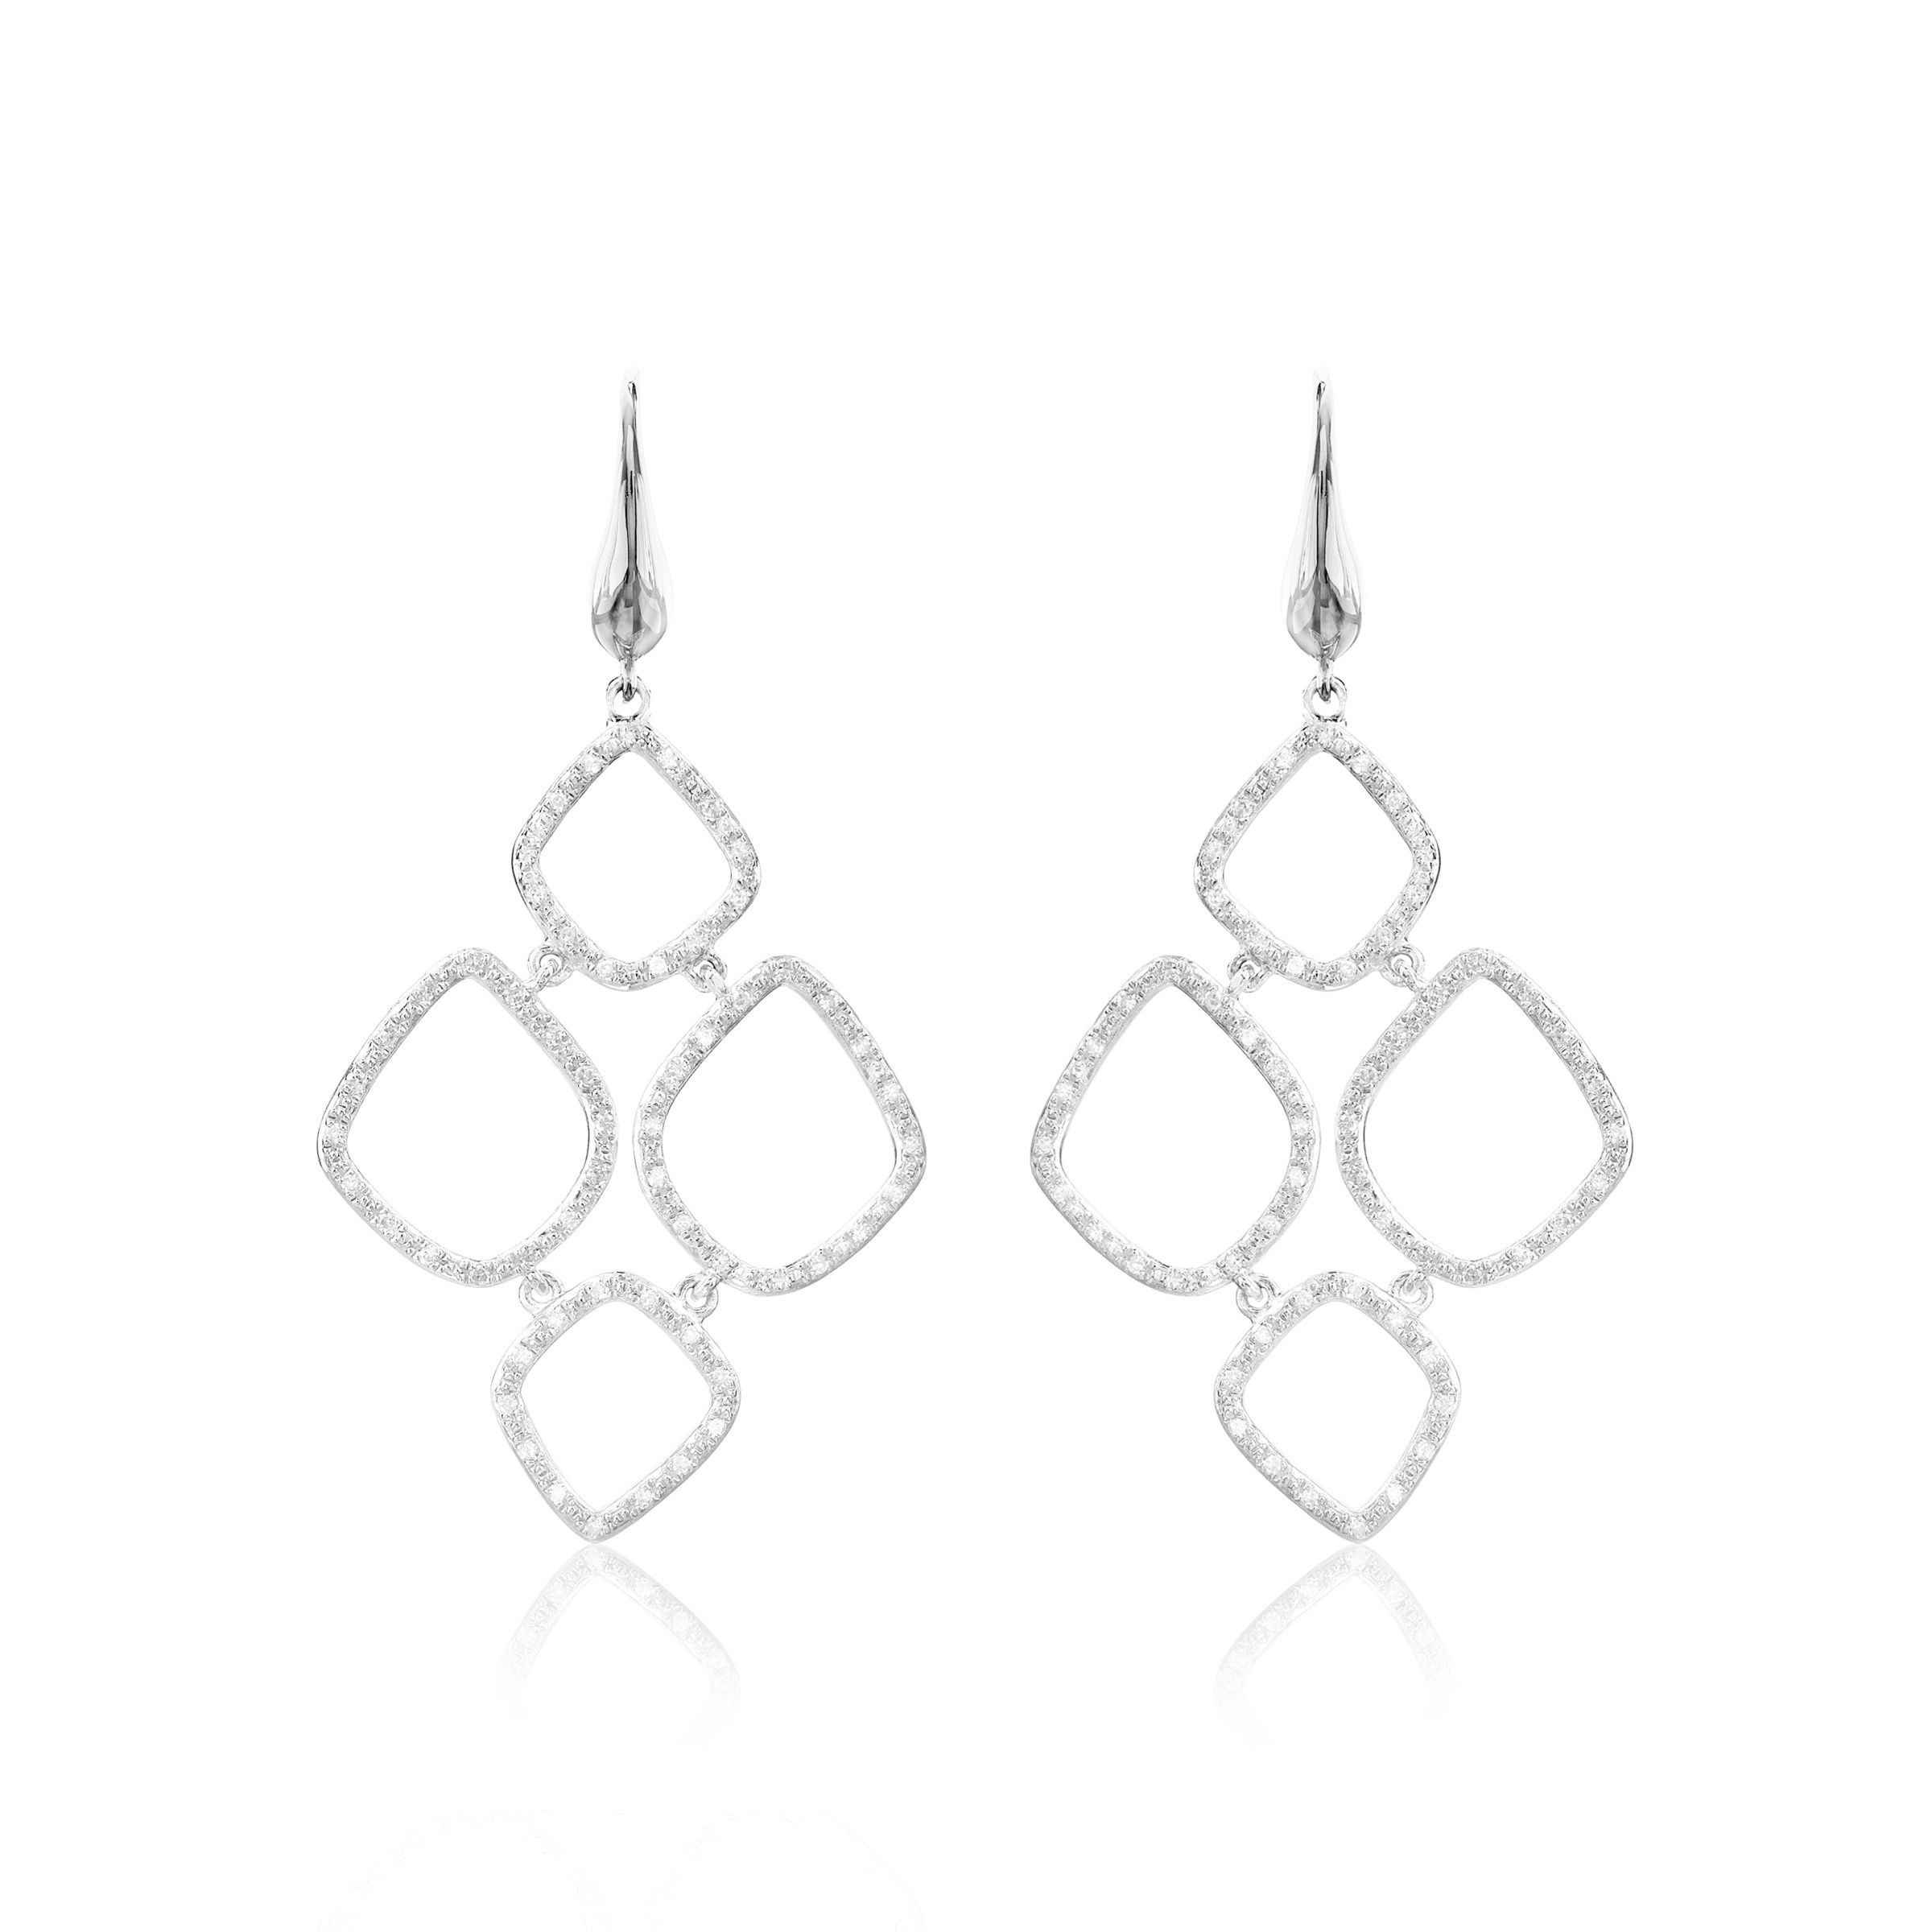 e3d31d2e9 Kate Middleton Jewelry - How to Buy Kate's Favorite Earrings & Necklaces